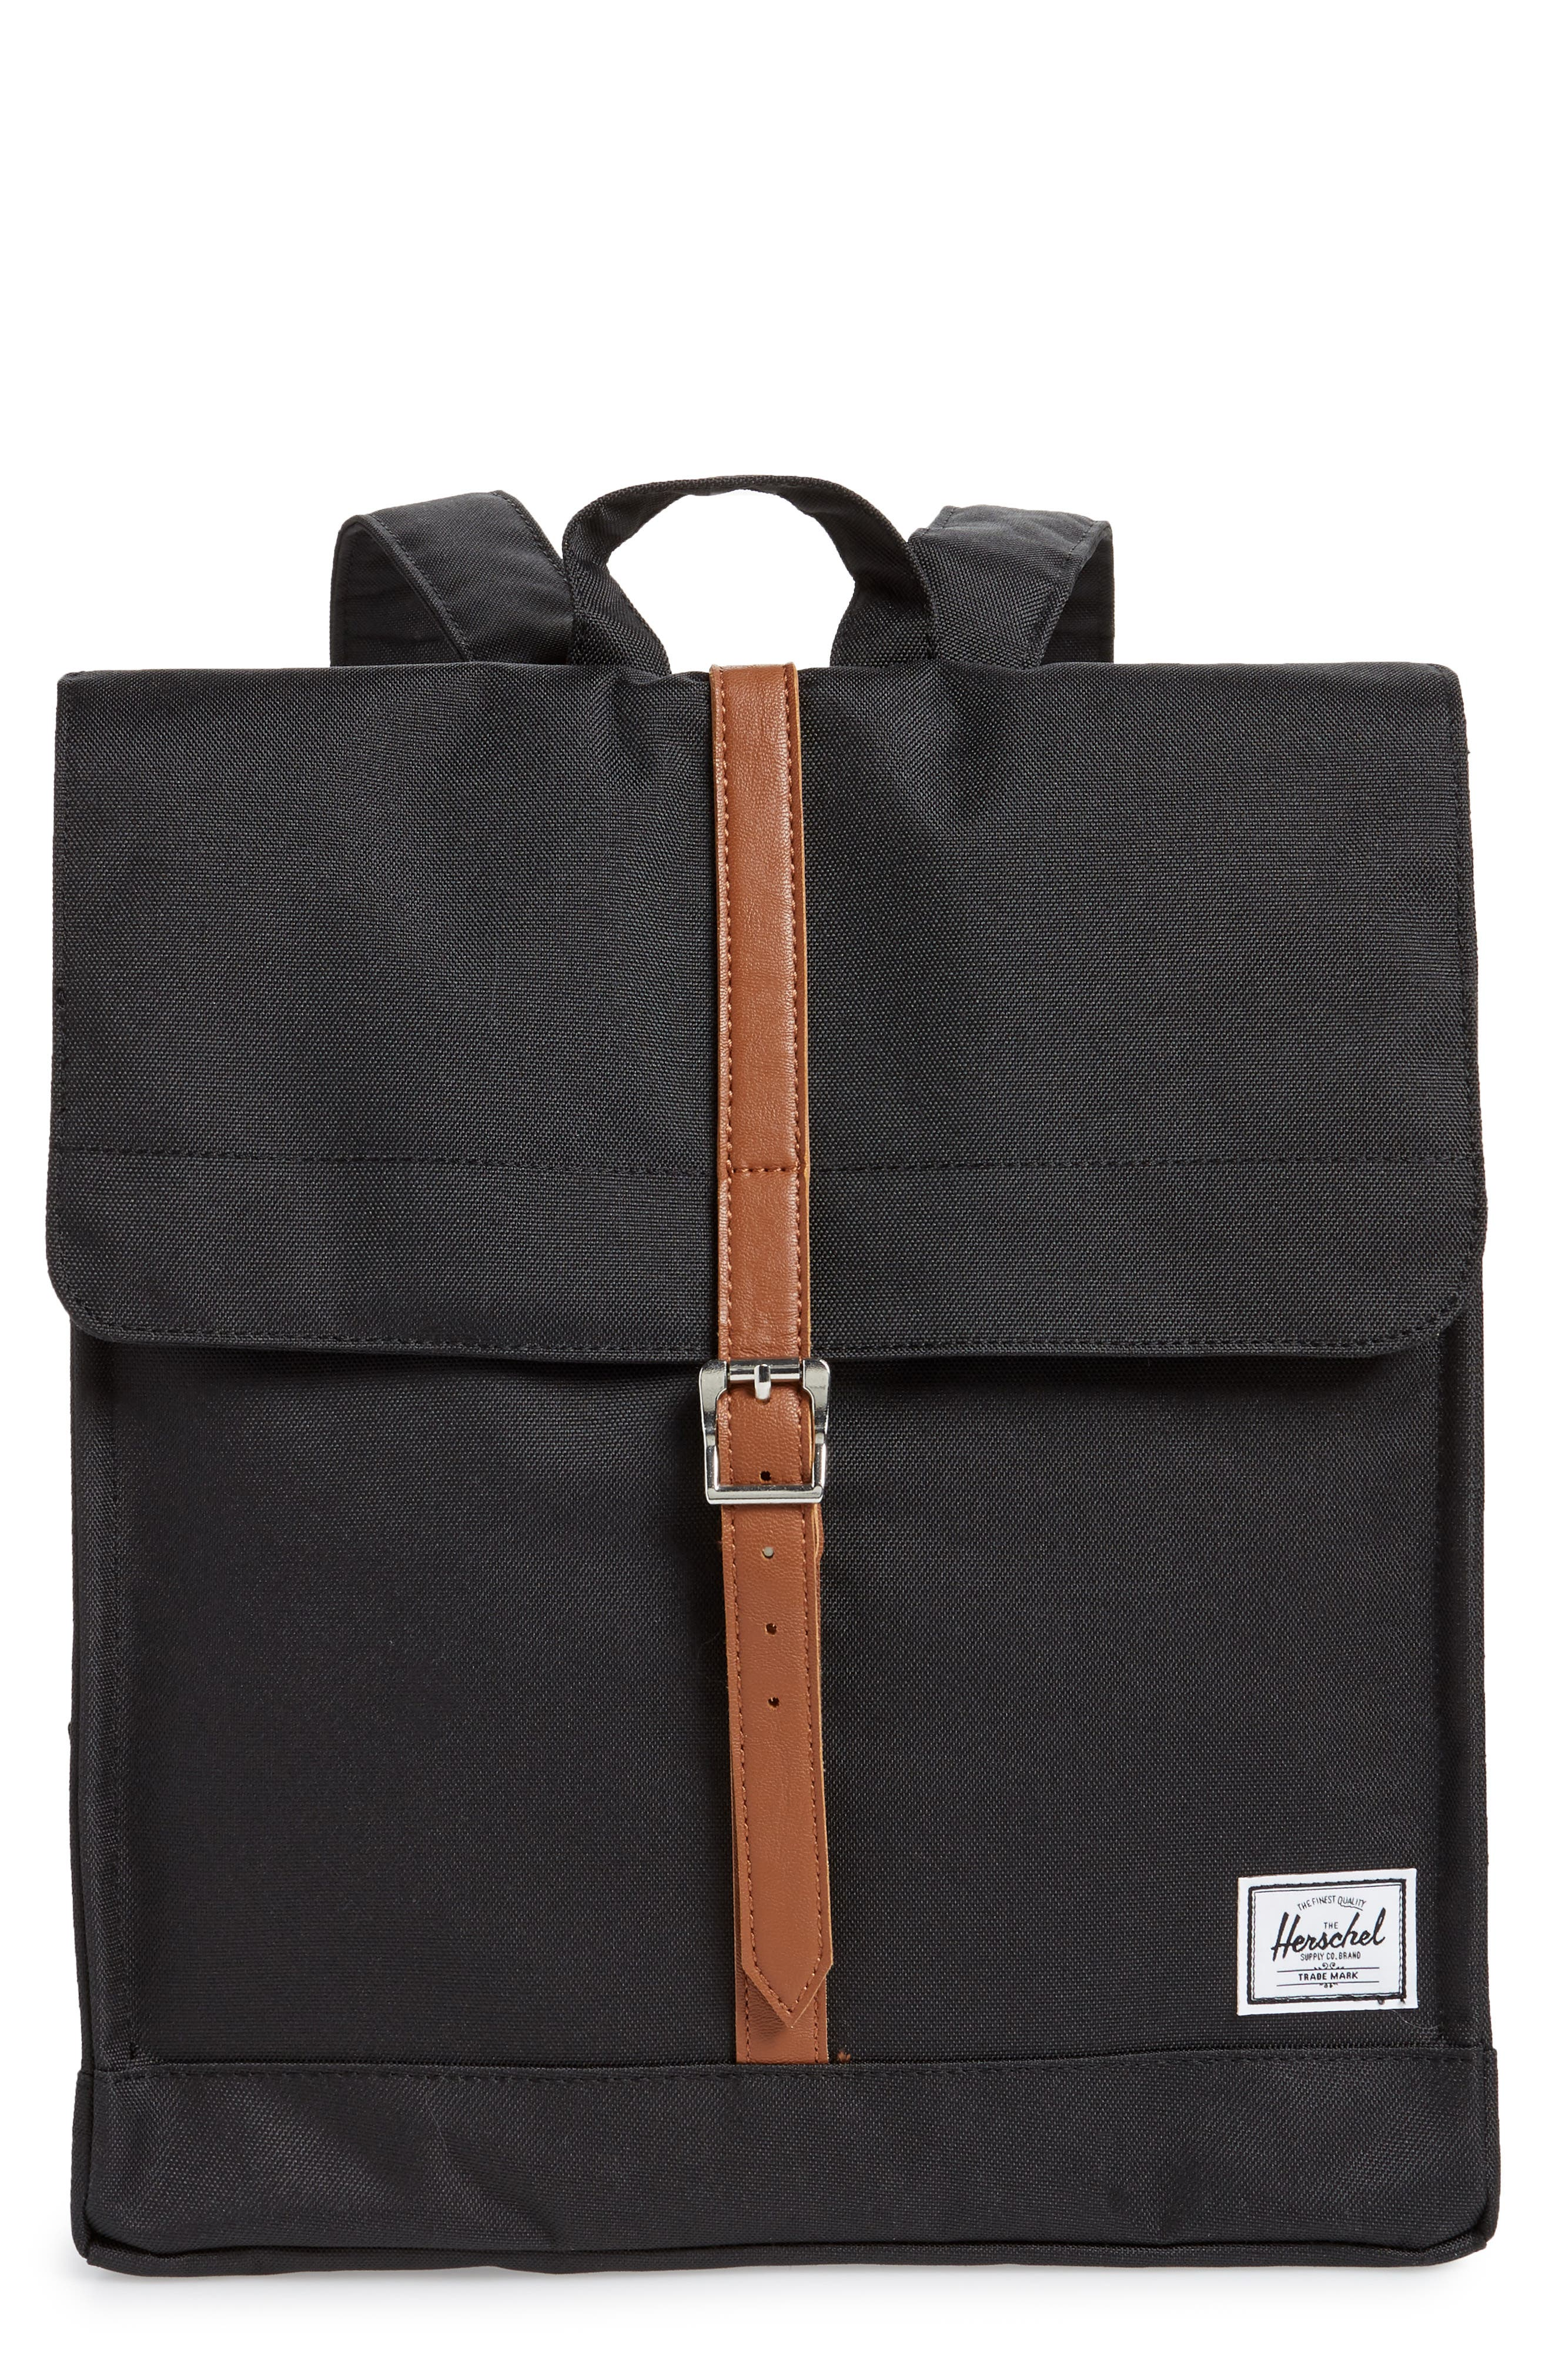 HERSCHEL SUPPLY CO. City Mid Volume Backpack, Main, color, BLACK/ TAN SYNTHETIC LEATHER